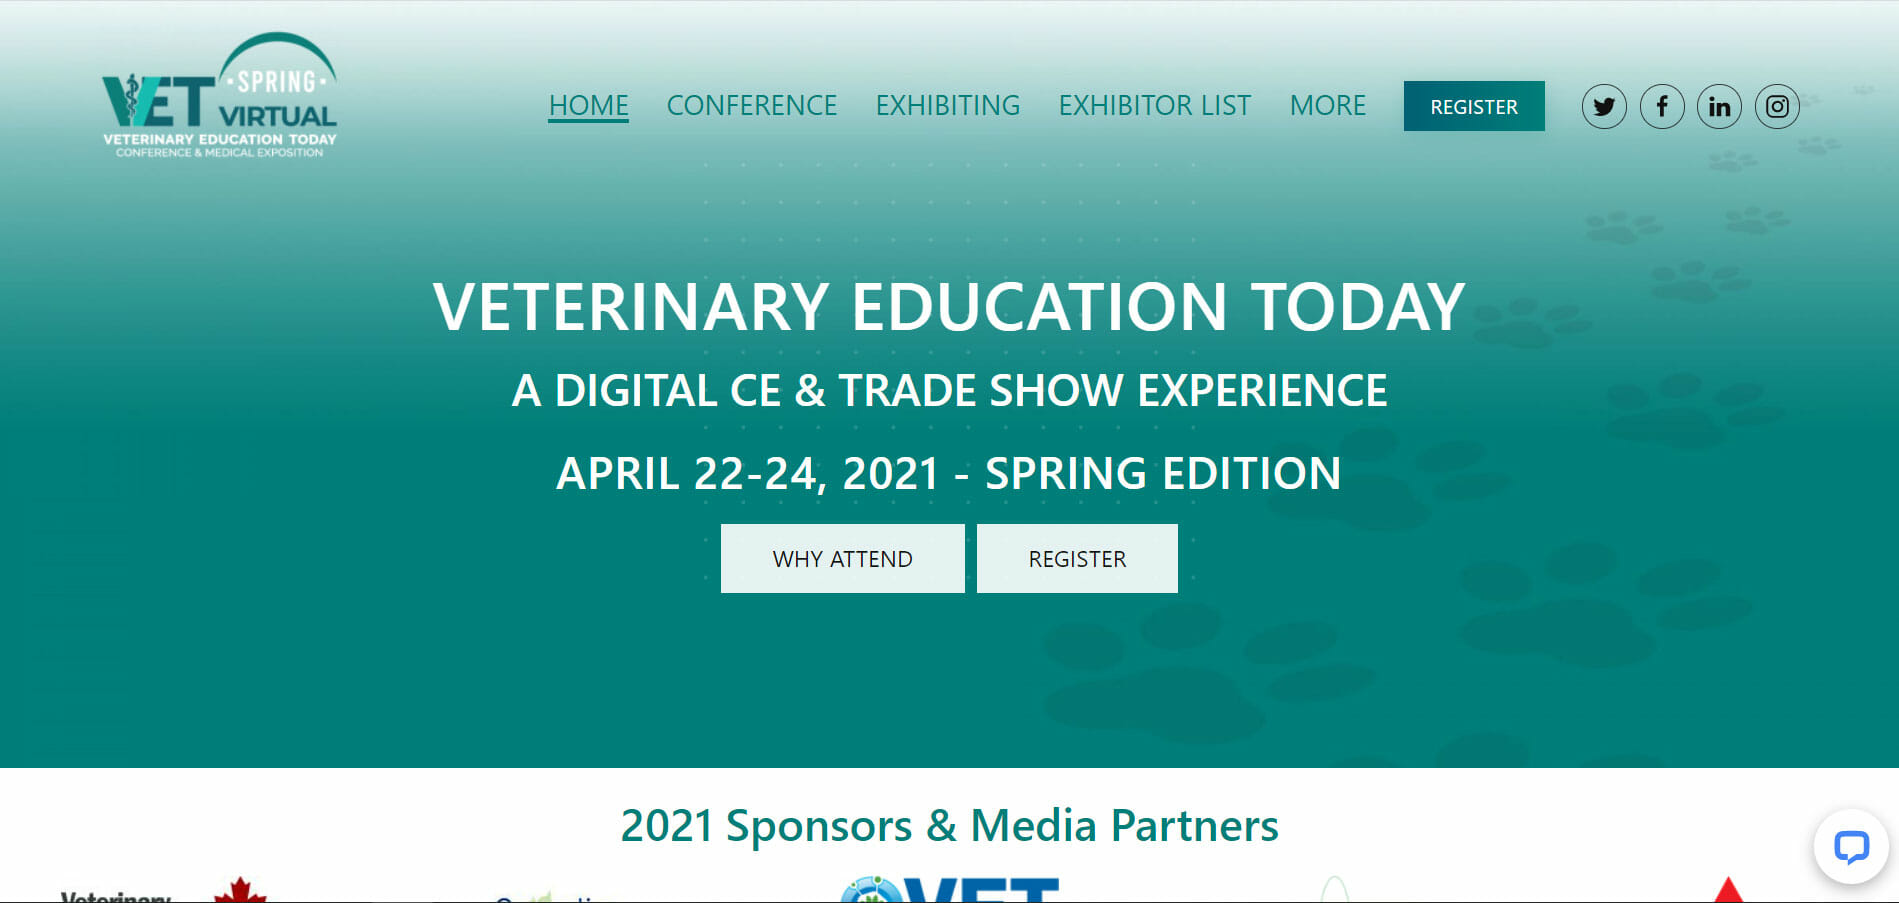 veterinary education today